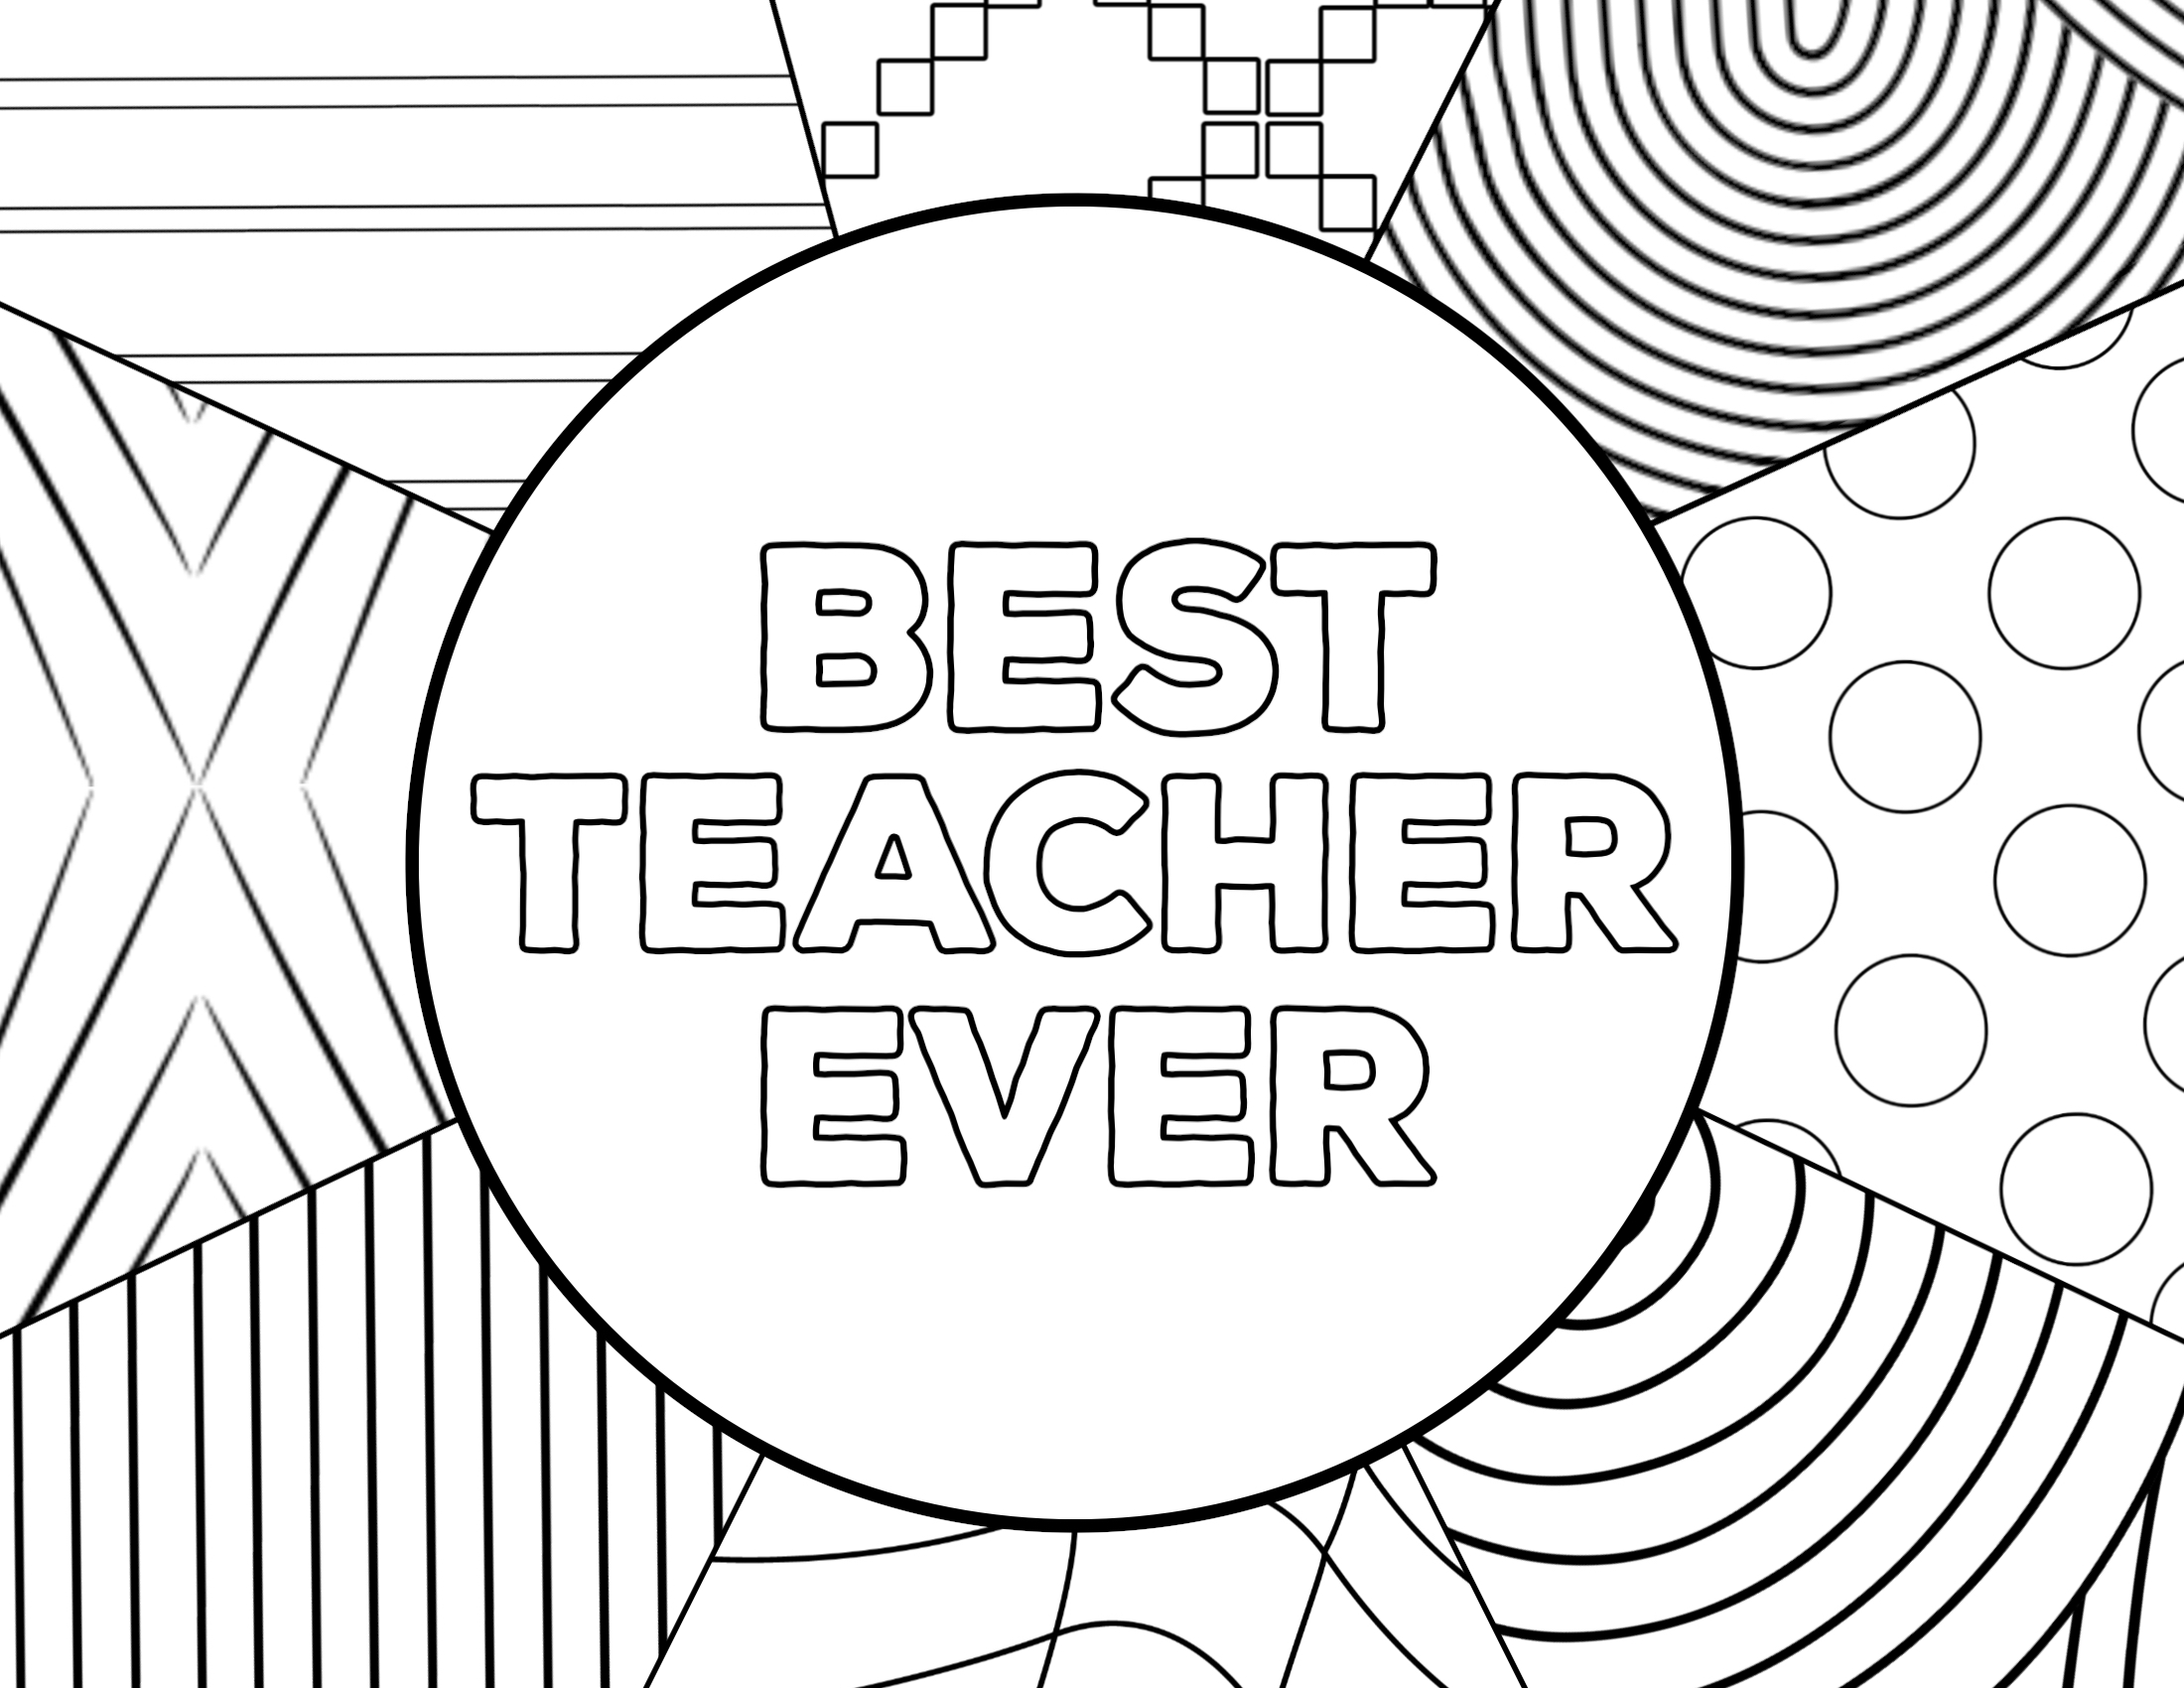 Teacher Appreciation Coloring Pages - Paper Trail Design